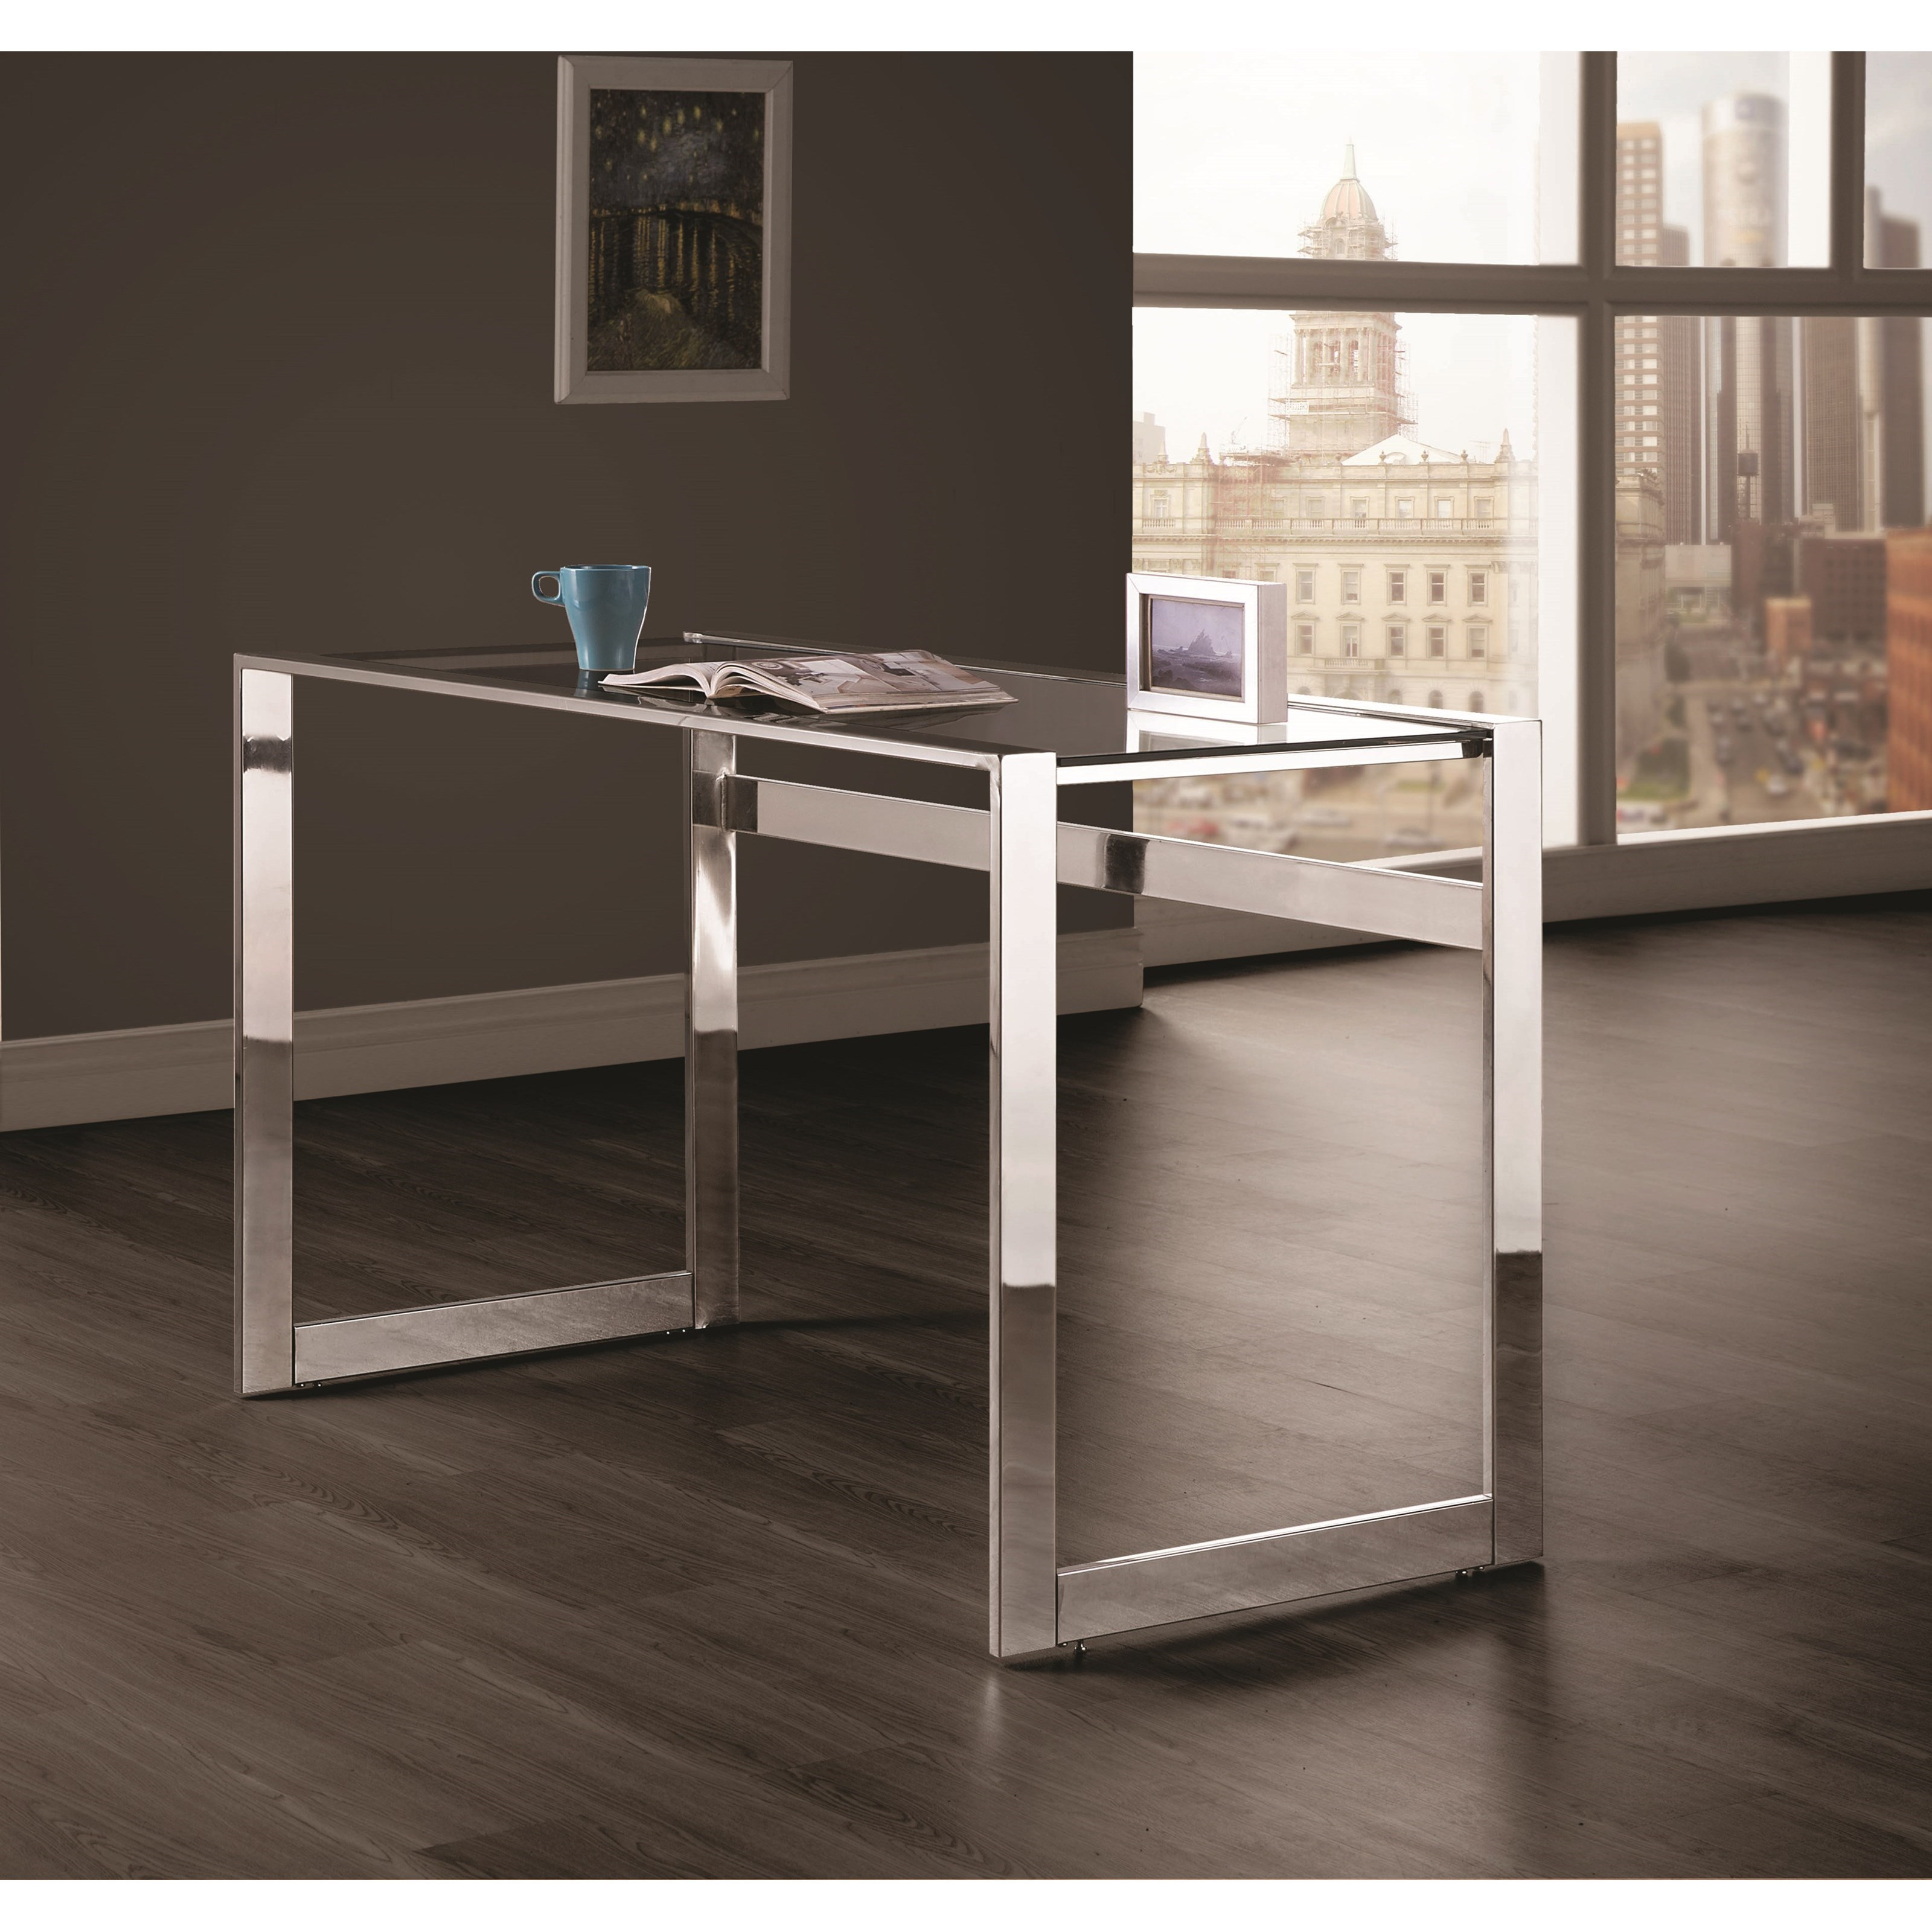 Coaster 800746 Contemporary Computer Desk with Chrome Legs